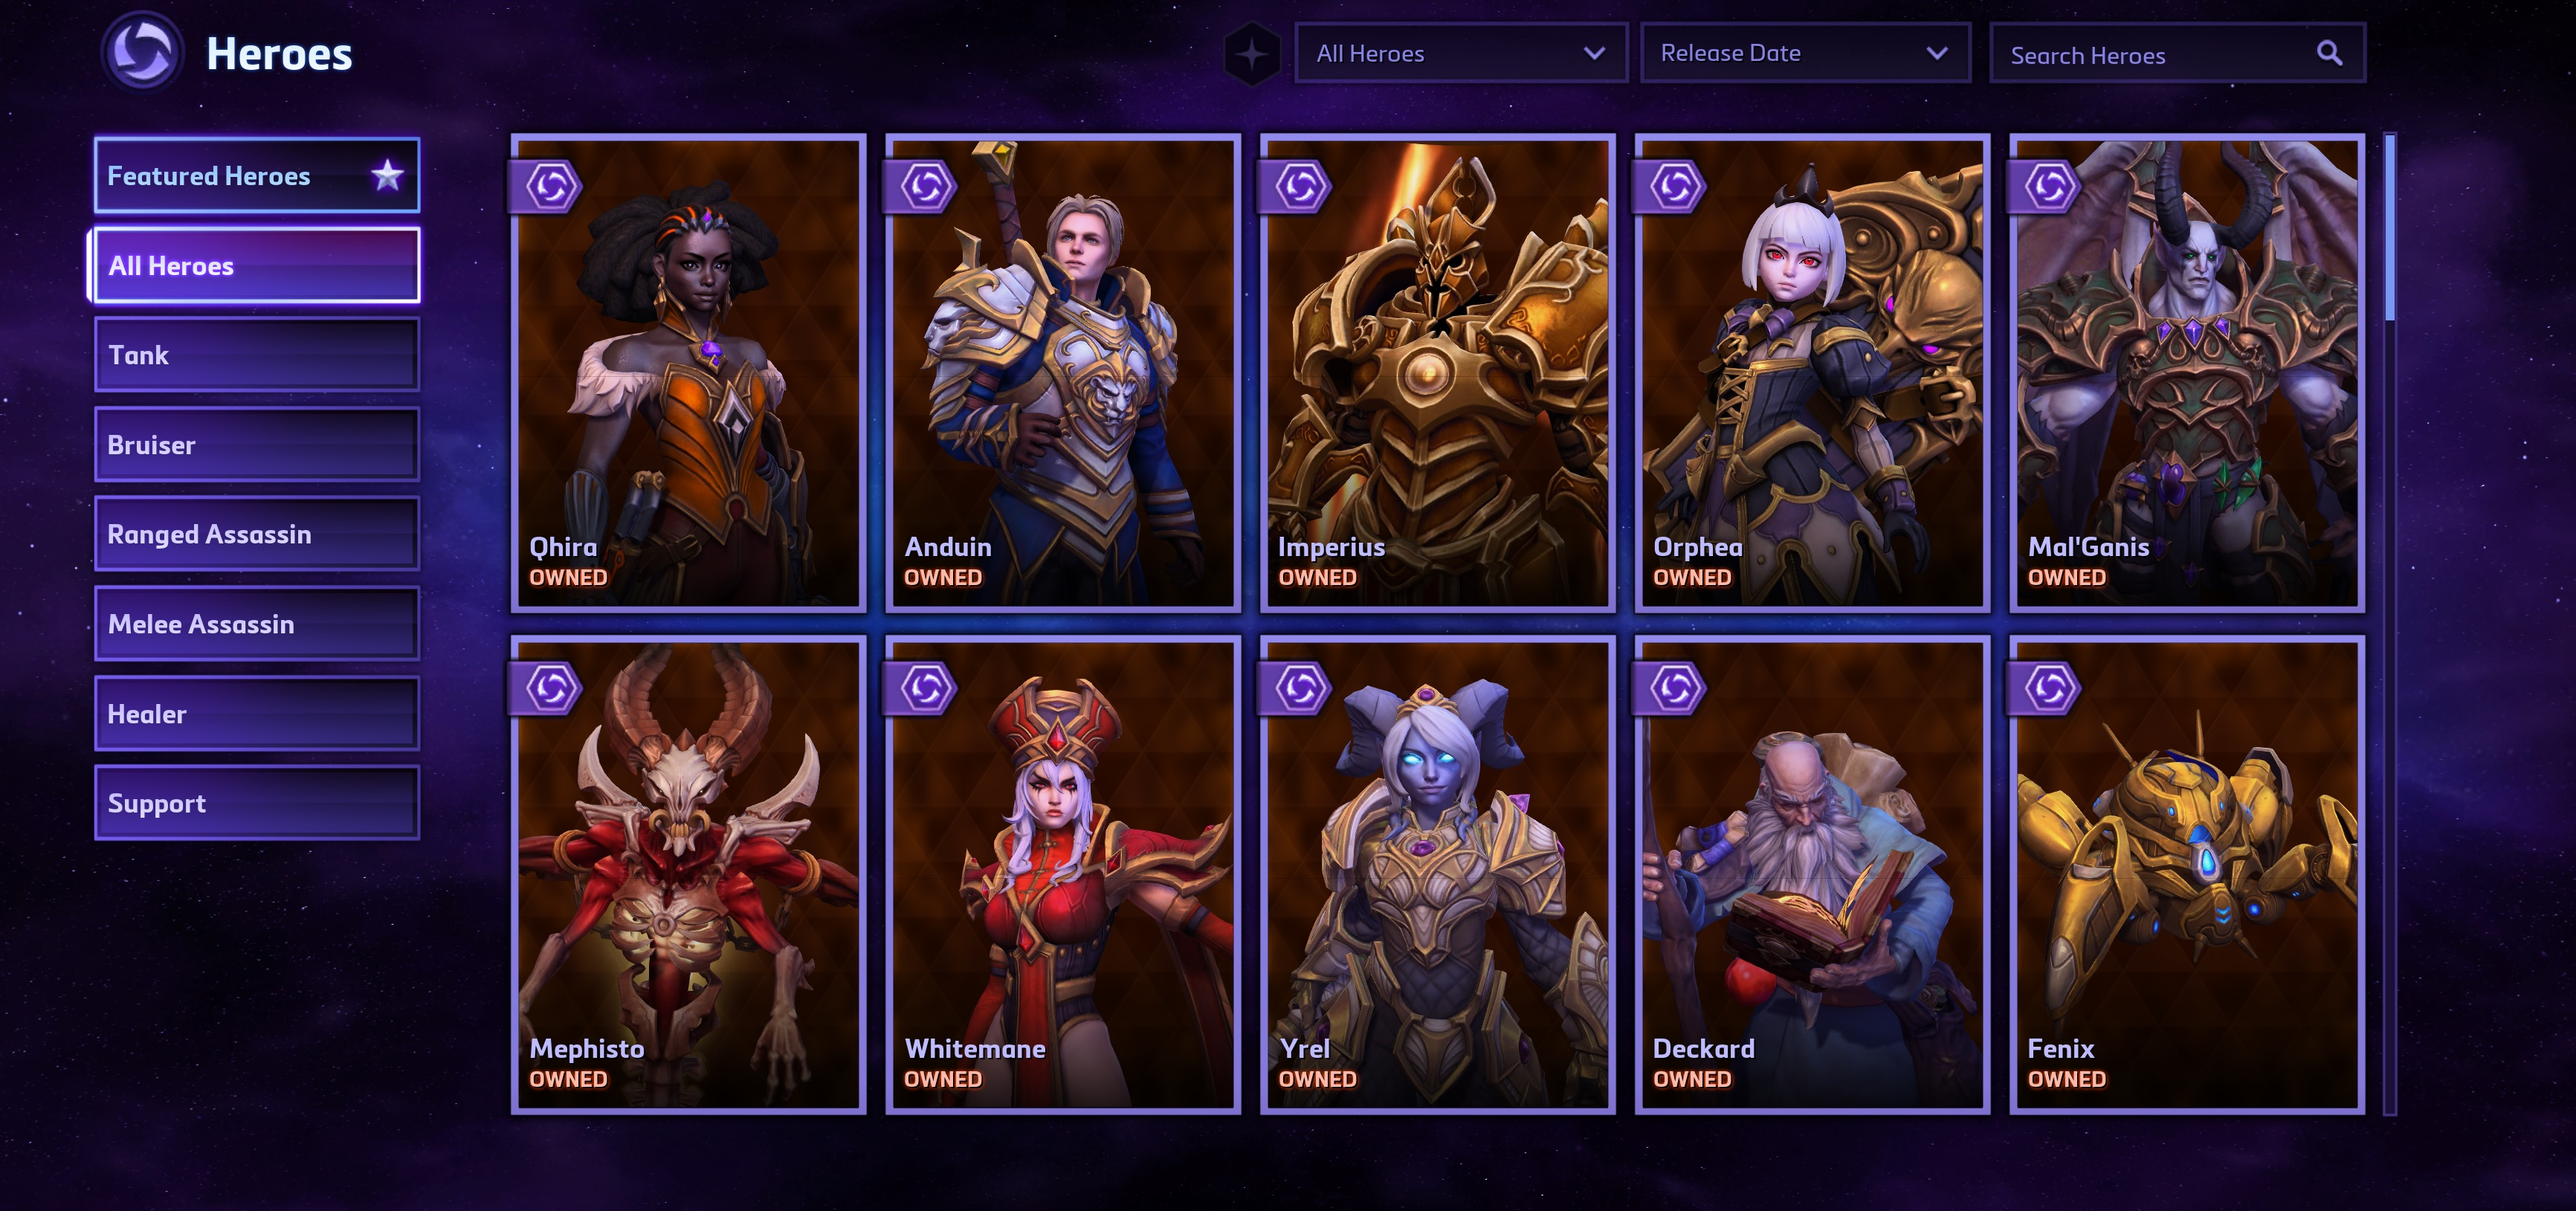 Update Every Character In Blizzard S Heroes Of The Storm Is Currently Free To Play Mal'ganis (tank) patch note history for heroes of the storm (hots). heroes of the storm